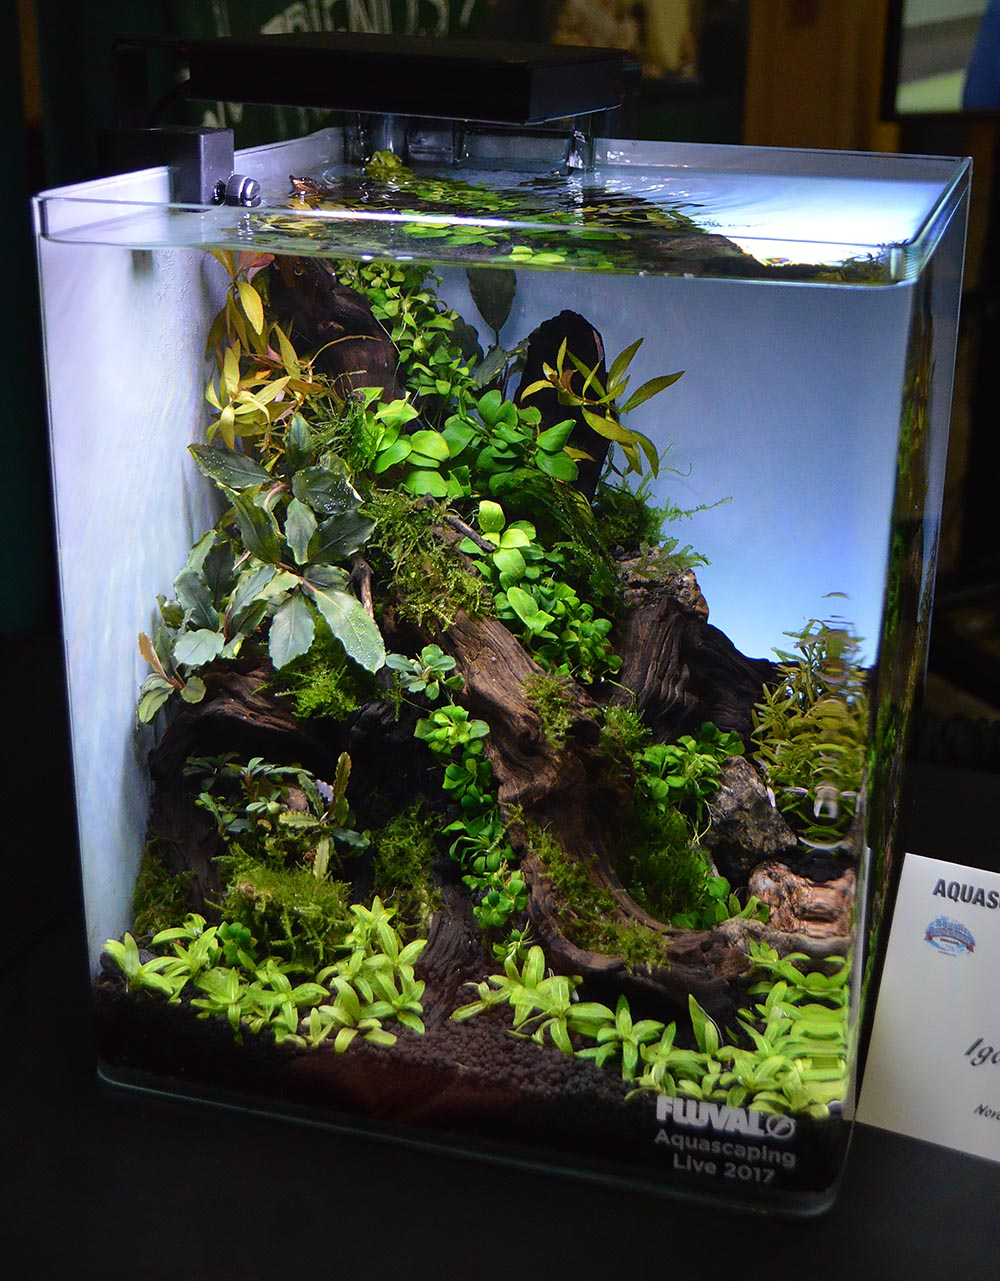 5th place went to the aquascaping entry from Igor Cialenco.